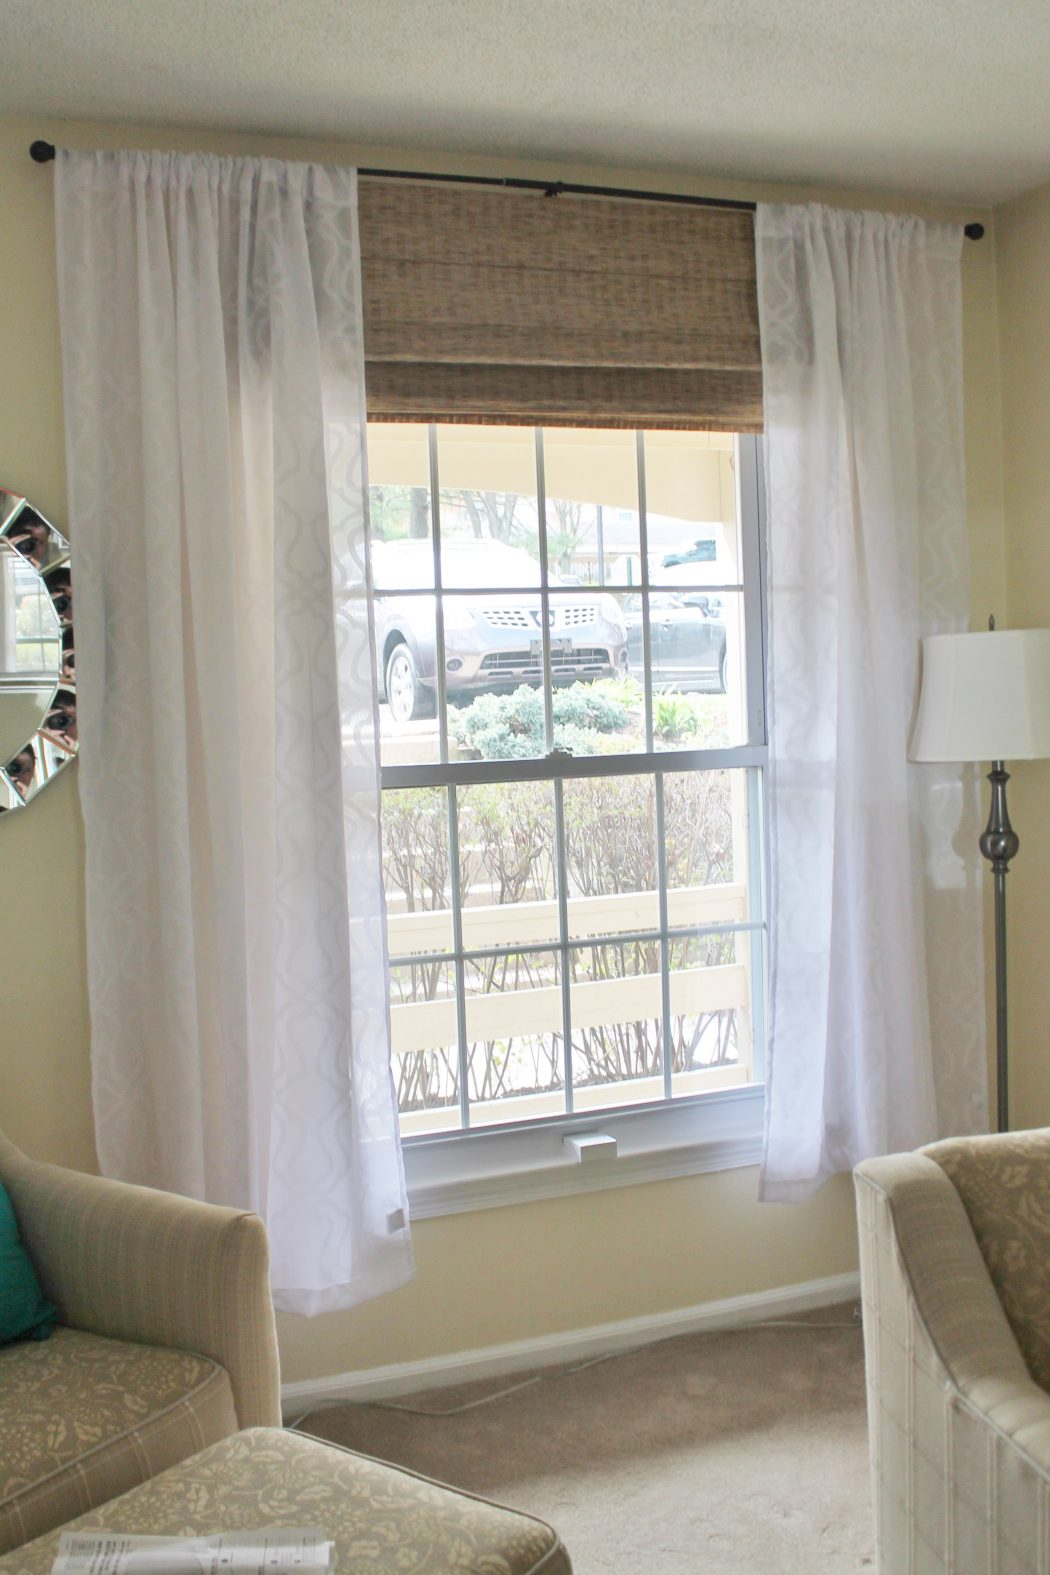 curtains-and-greens-015 20+ Hottest Curtain Design Ideas for 2020